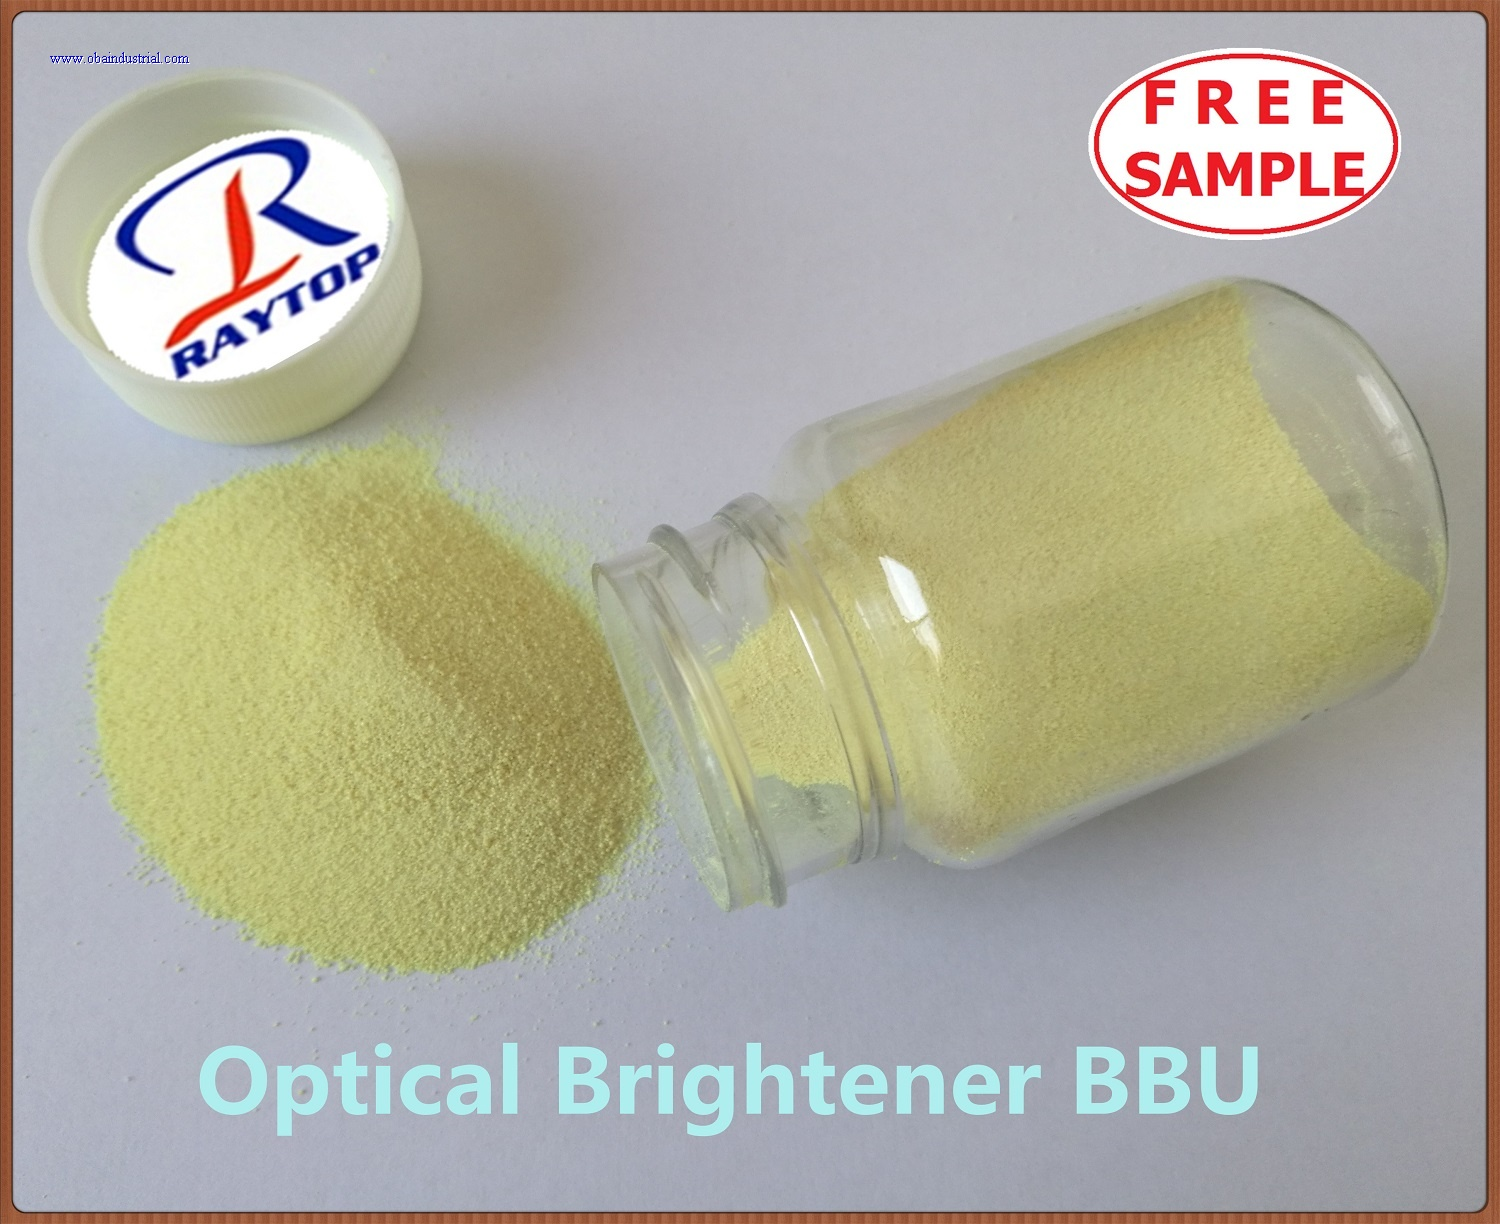 Optical Brightener BBU